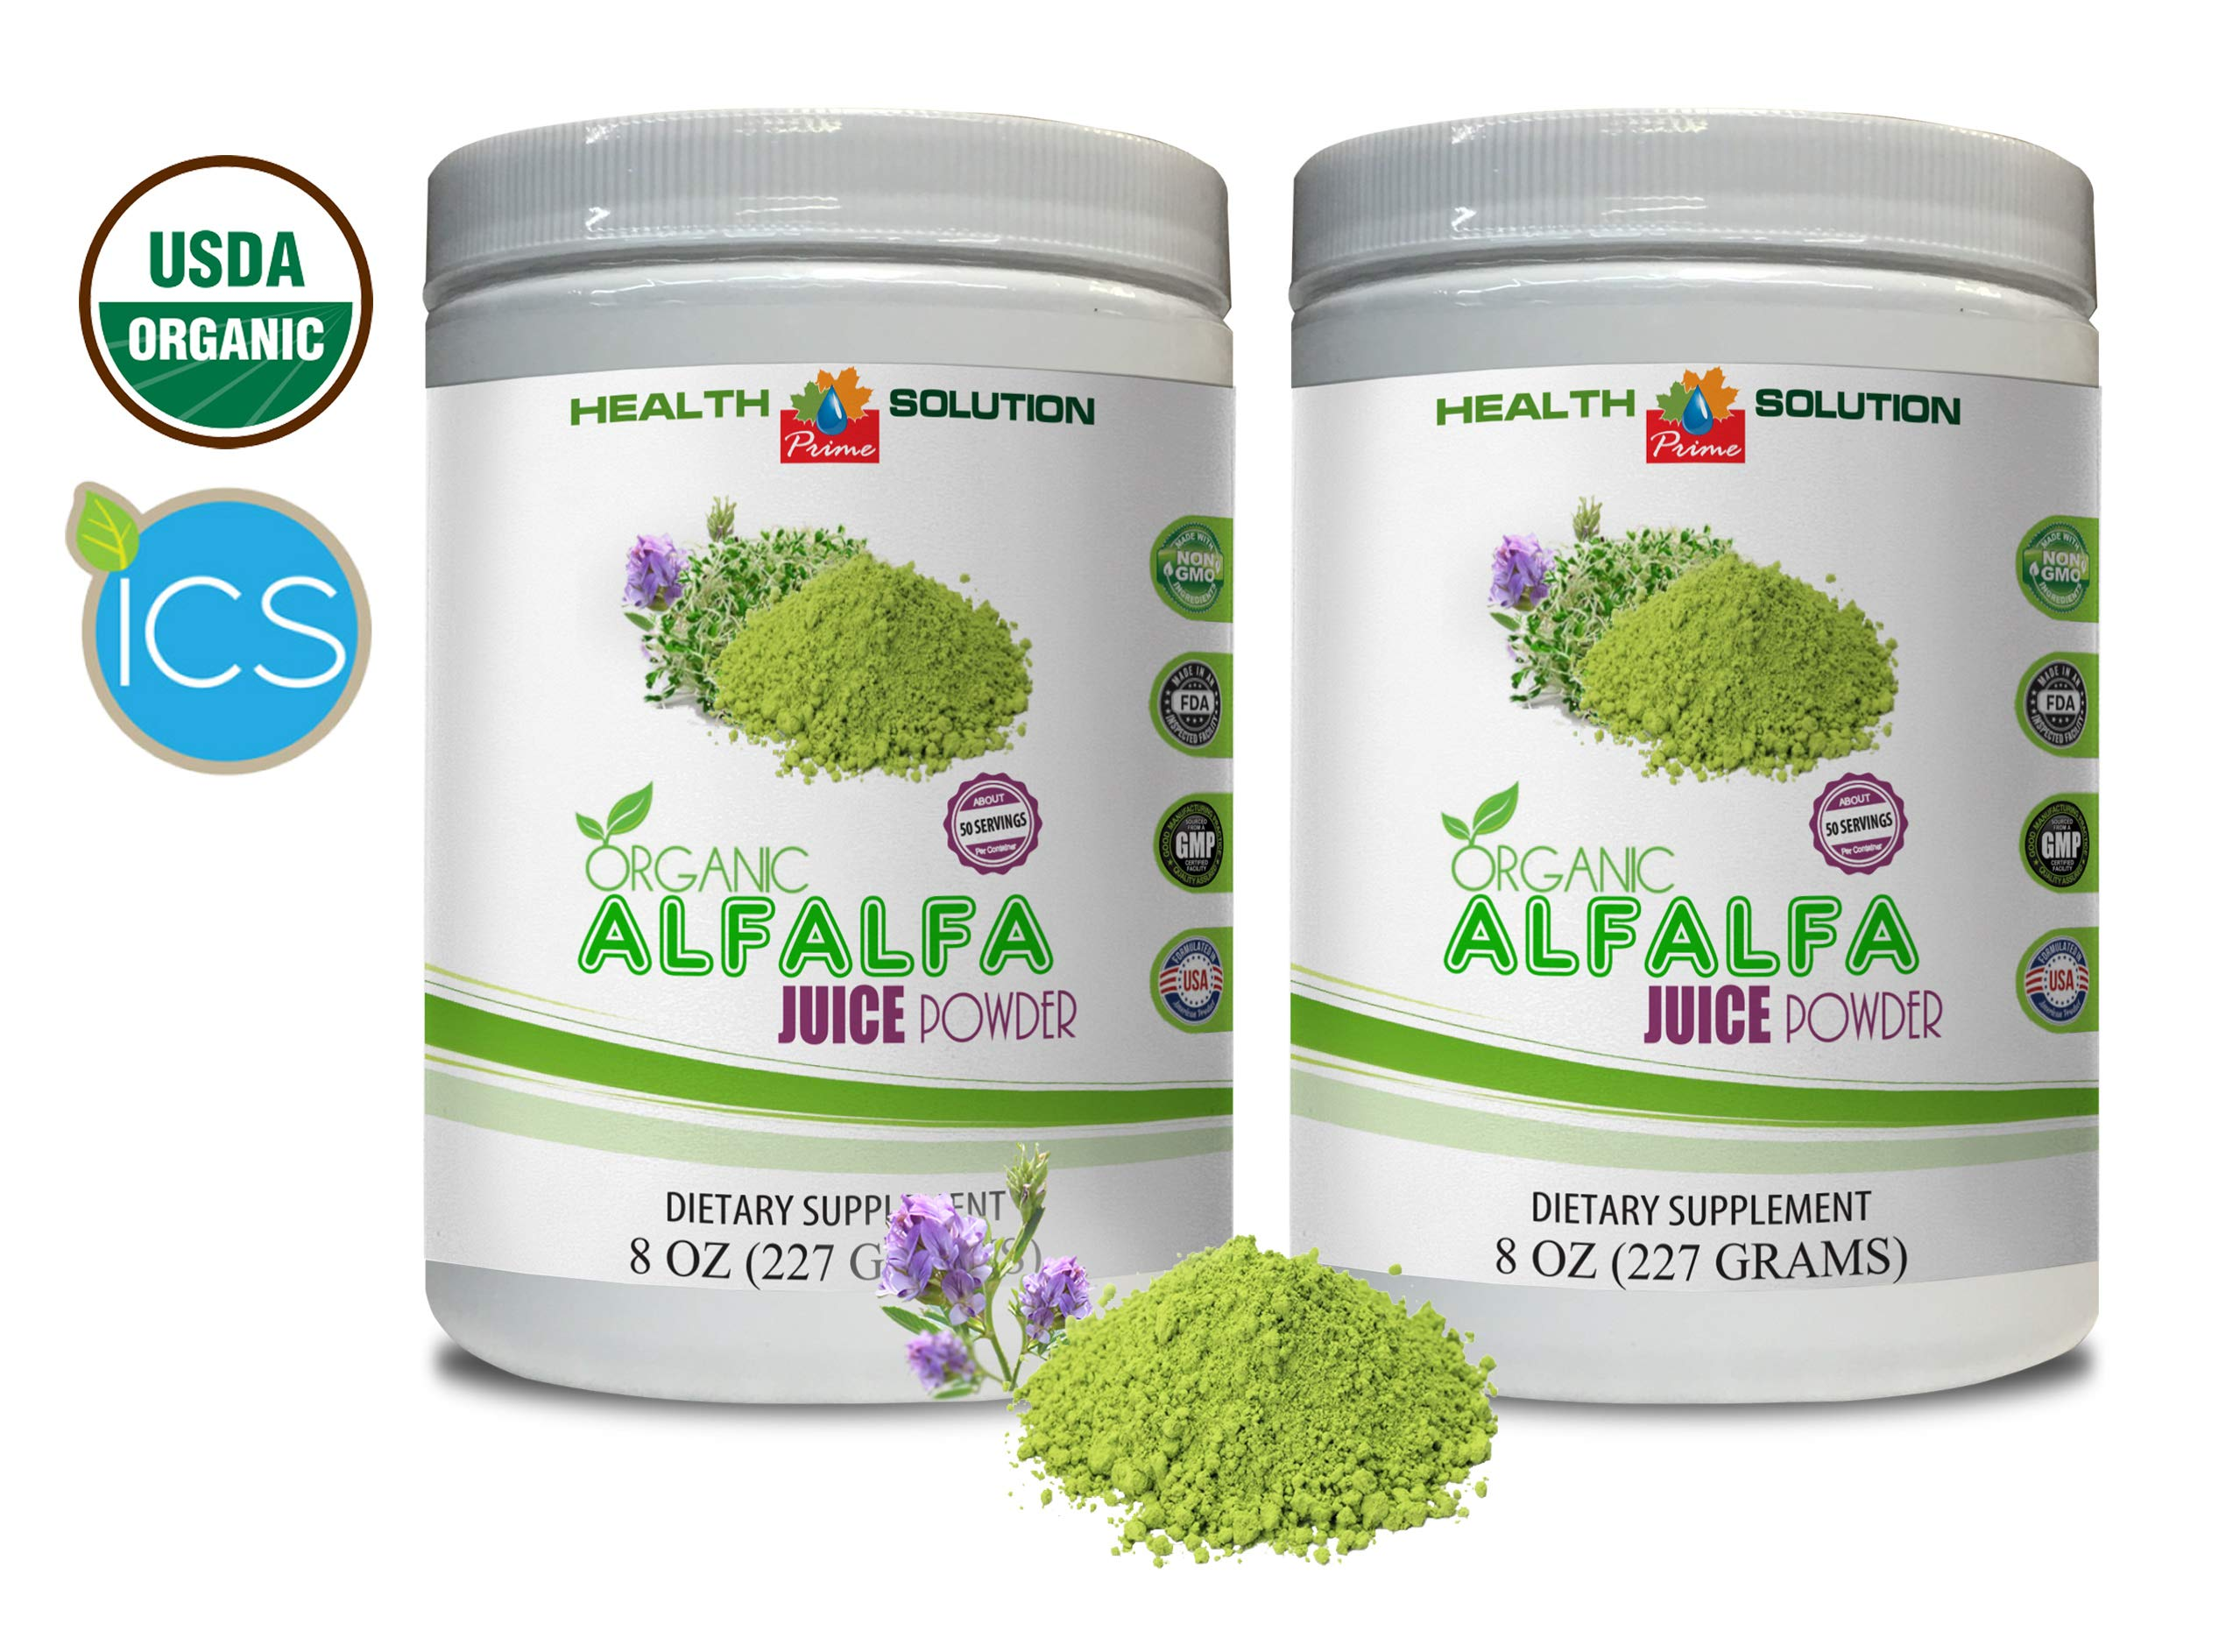 antioxidant Supplement - Organic Alfalfa Juice Powder - Alfalfa Powder Bulk - 2 Cans 16 OZ (100 Servings)